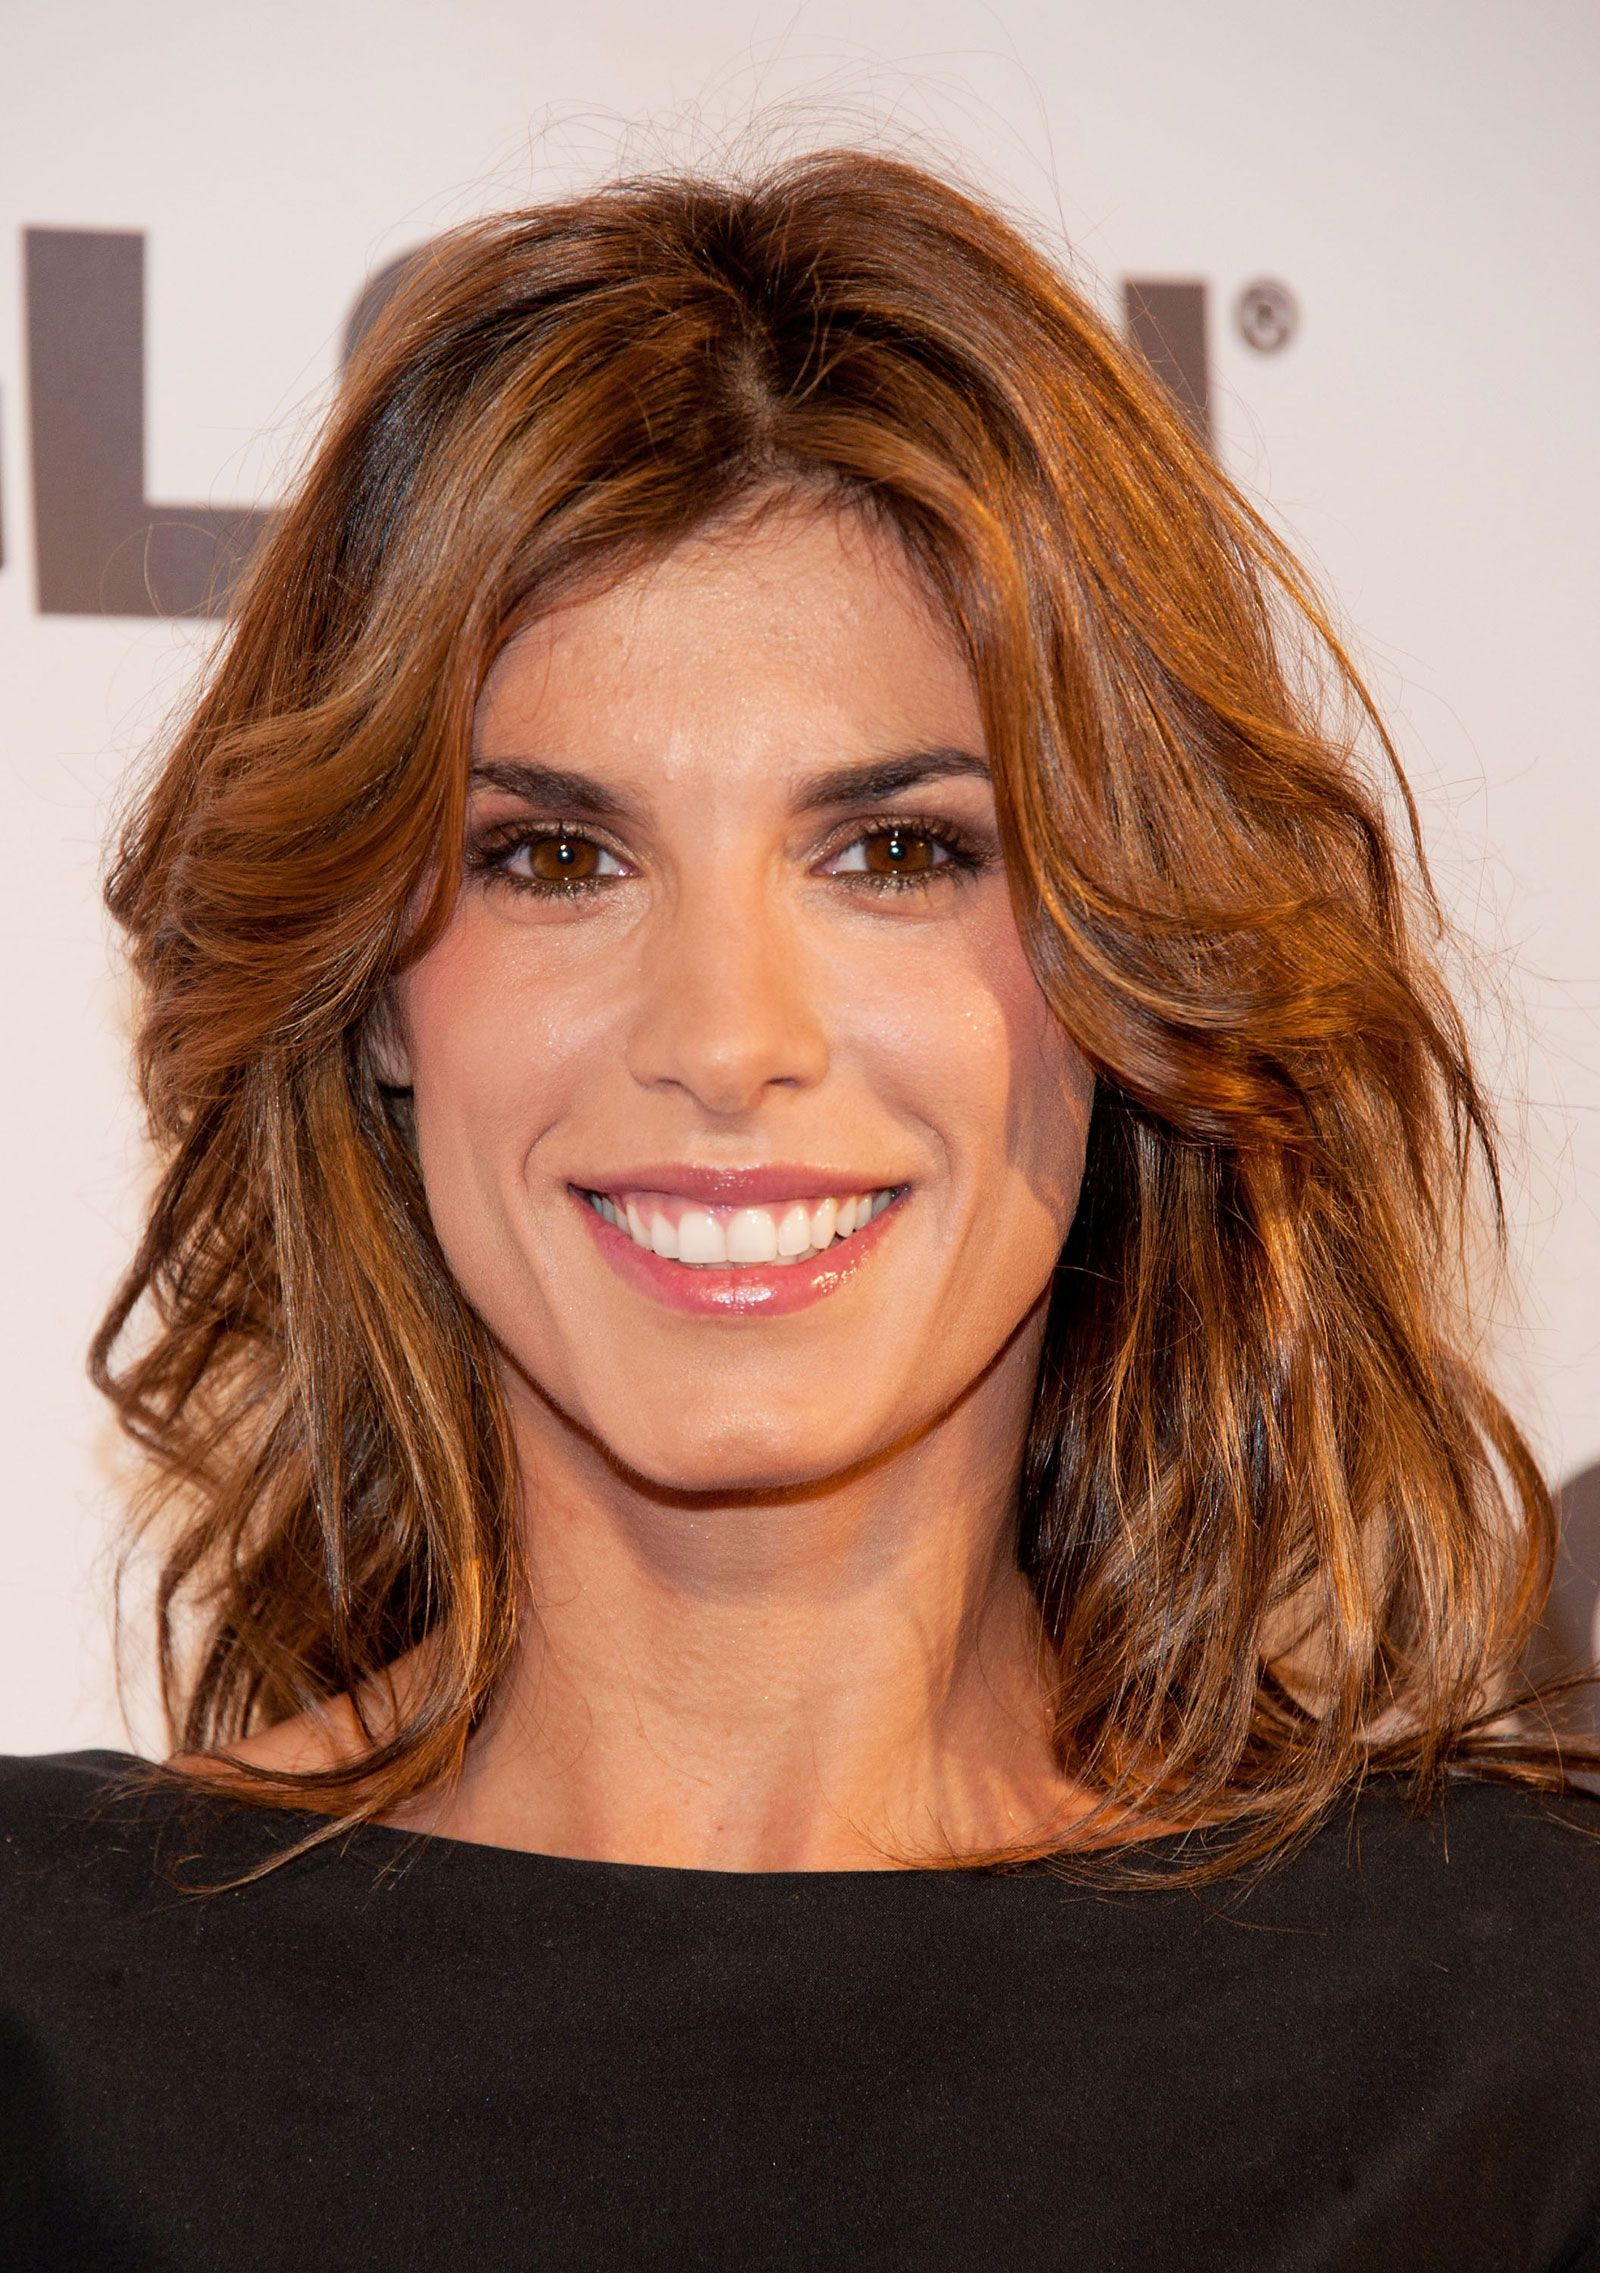 Elisabetta-Canalis-at-the-GLSEN-Respect-Awards-1